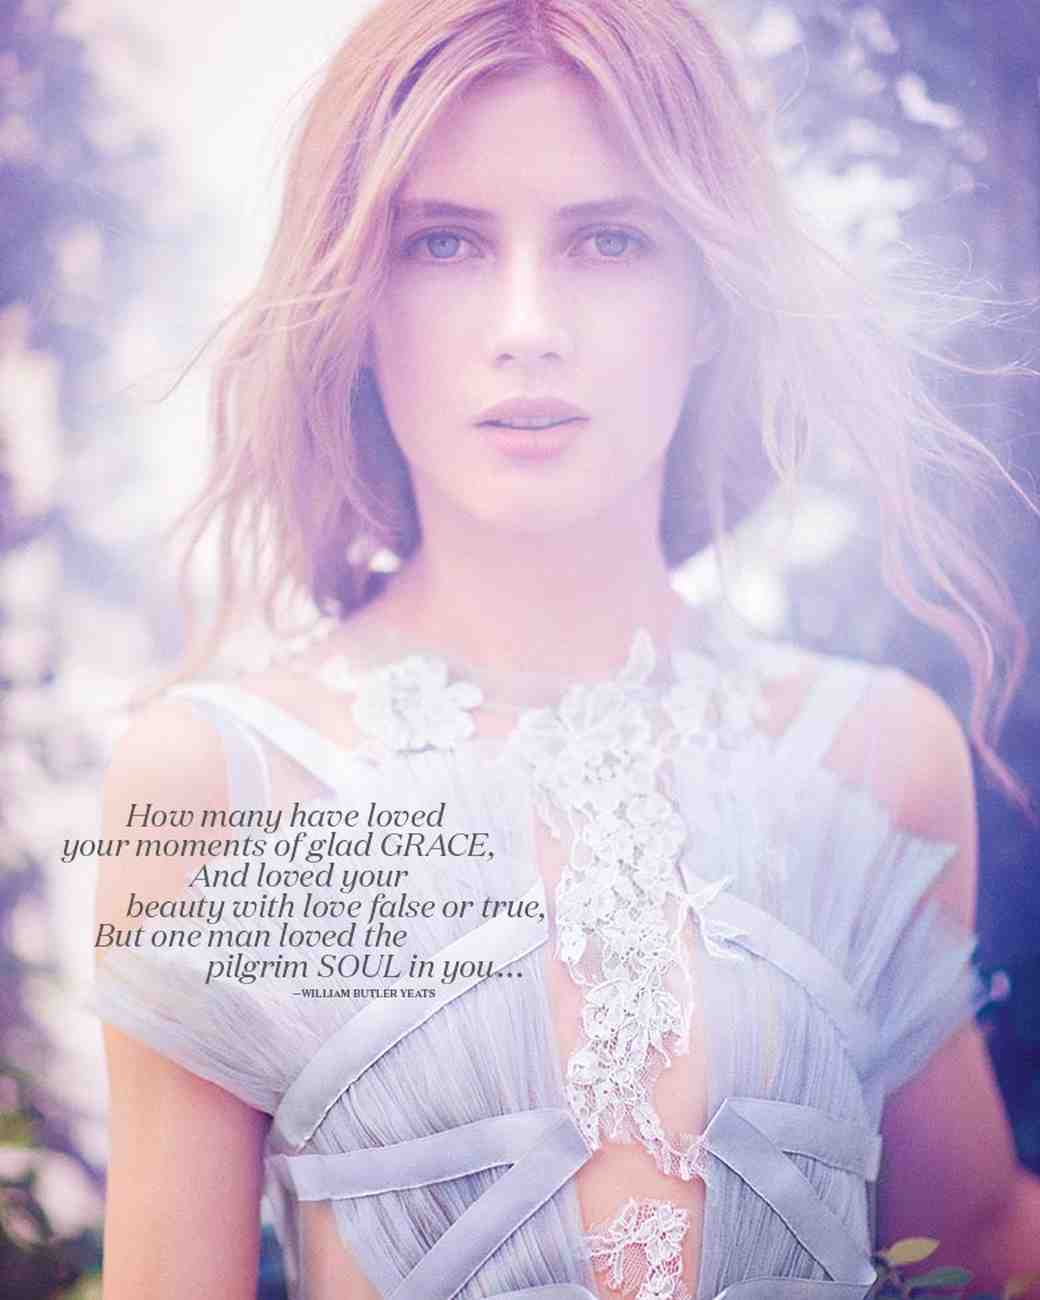 winter-fashion-poetic-quotes-william-butler-yeats-how-many-have-loved-0216.jpg